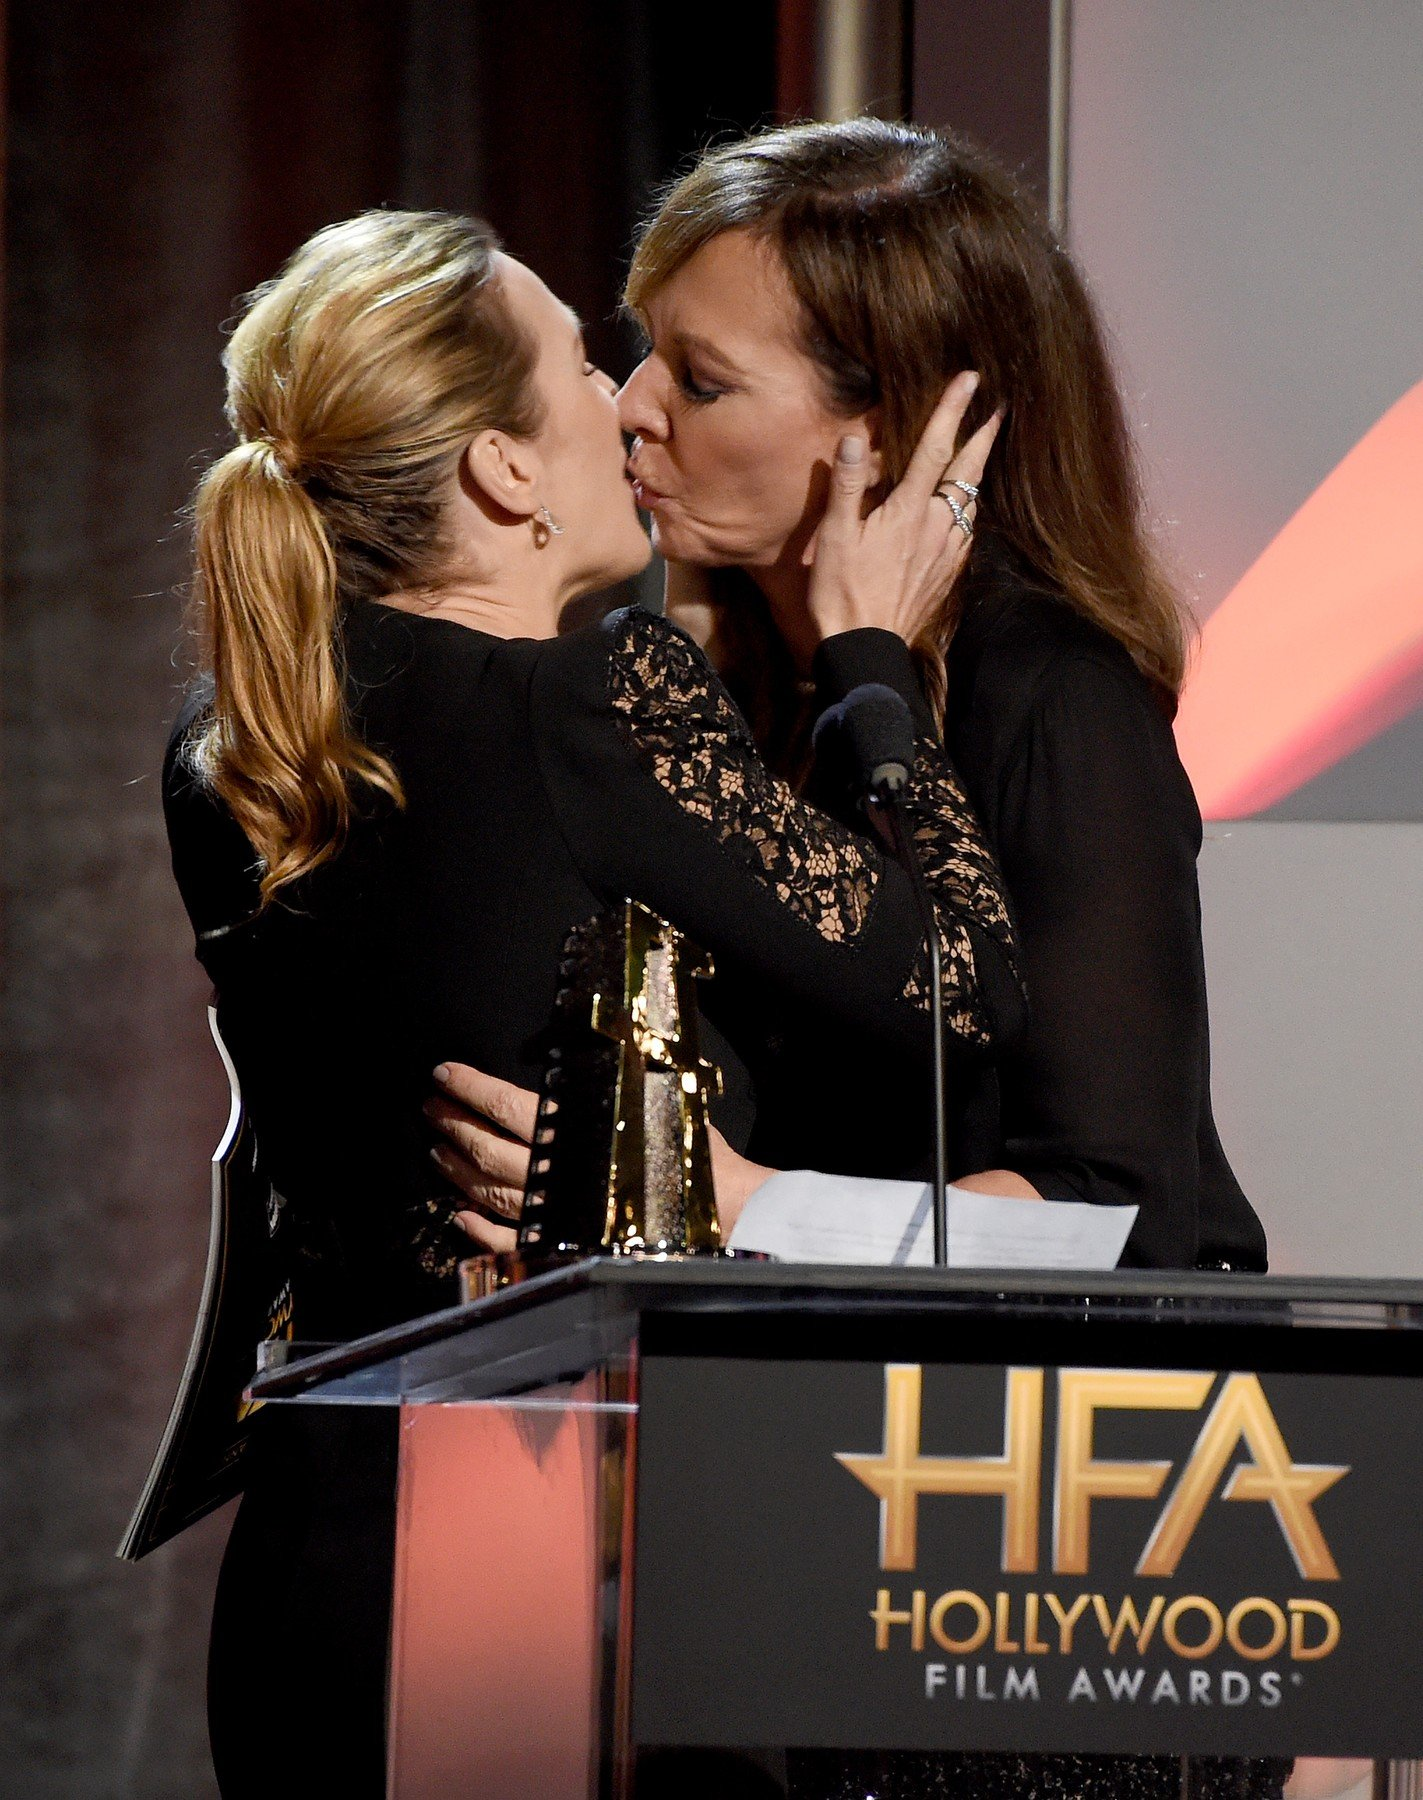 BEVERLY HILLS - NOVEMBER 5: Kate Winslet and Allison Janney at the 2017 Hollywood Film Awards at the Beverly Hilton on November 5, 2017 in Beverly Hills, California., Image: 354721182, License: Rights-managed, Restrictions: *** World Rights ***, Model Release: no, Credit line: Profimedia, SIPA USA